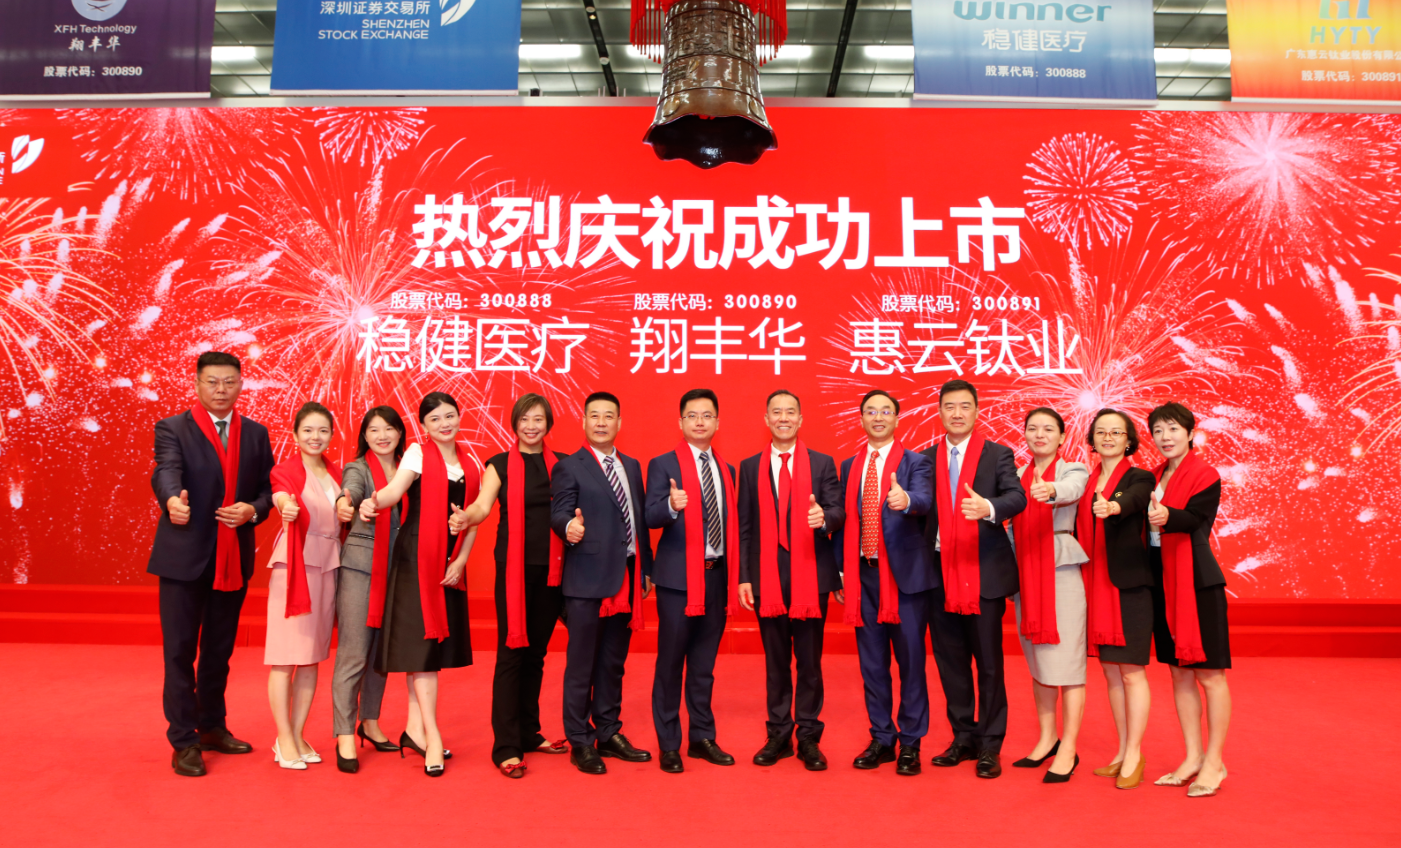 Winner Medical Co.,Ltd is Successfully Listed ! Bell Ringing Ceremony on 17th September